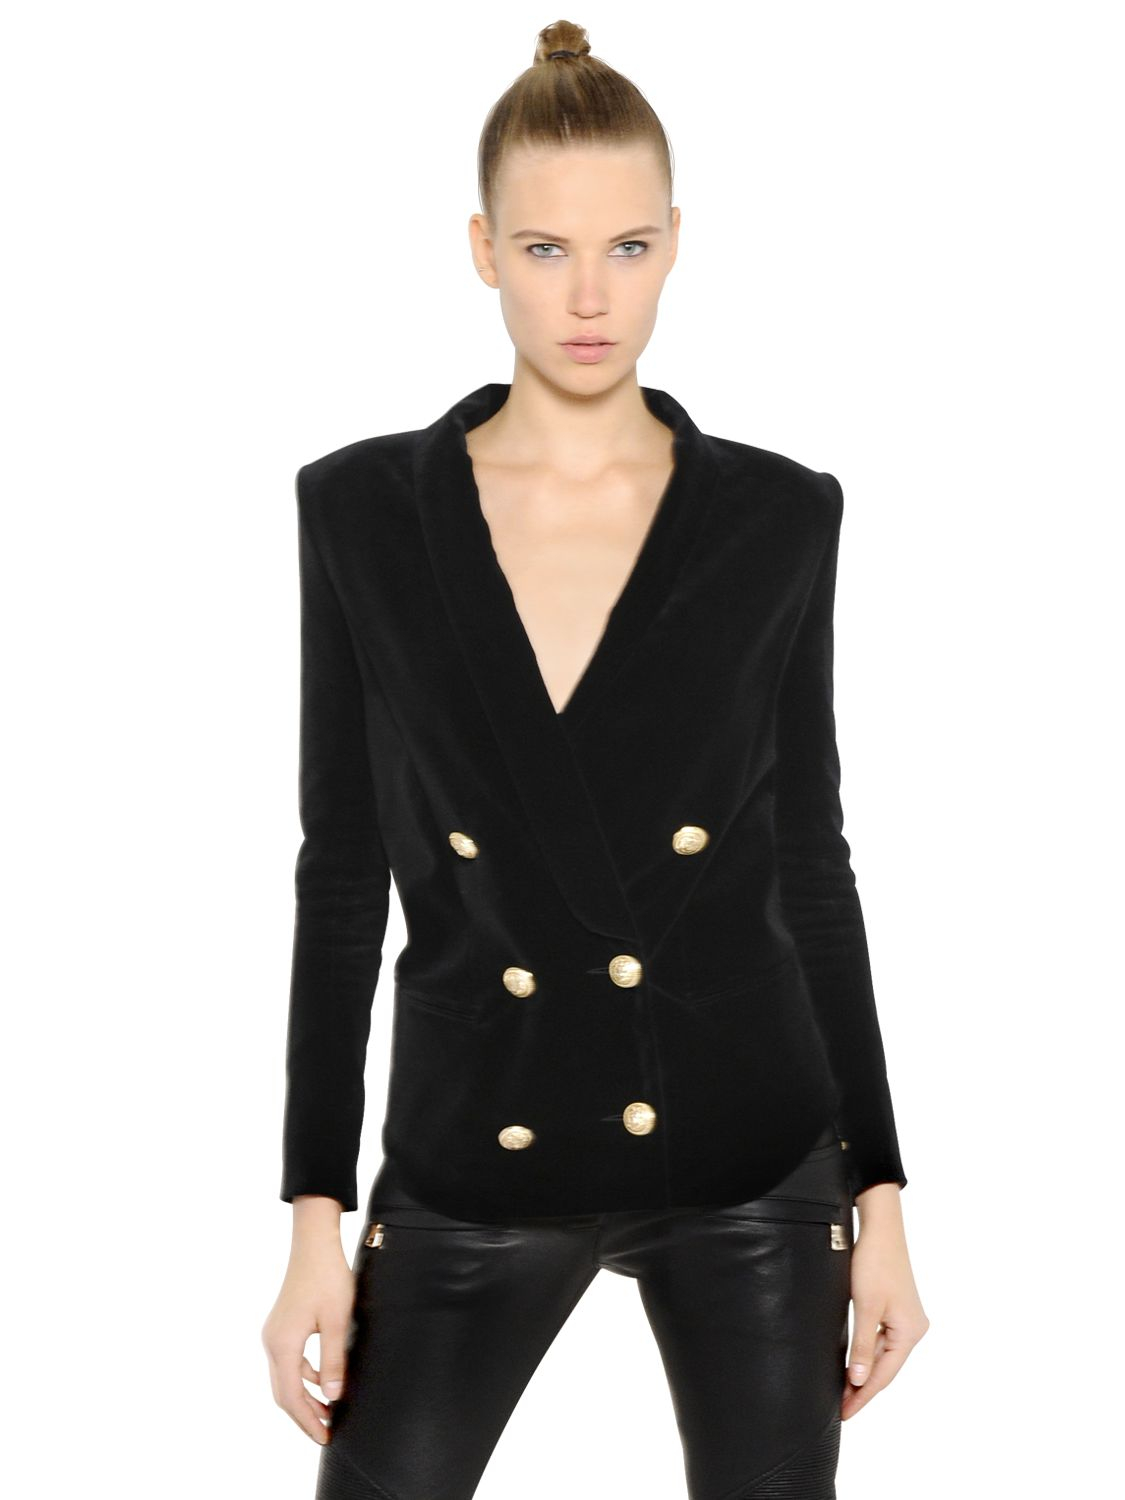 Balmain Double Breasted Blazer | Balmain Paris Leather Jacket | Double Breasted Blazer Women